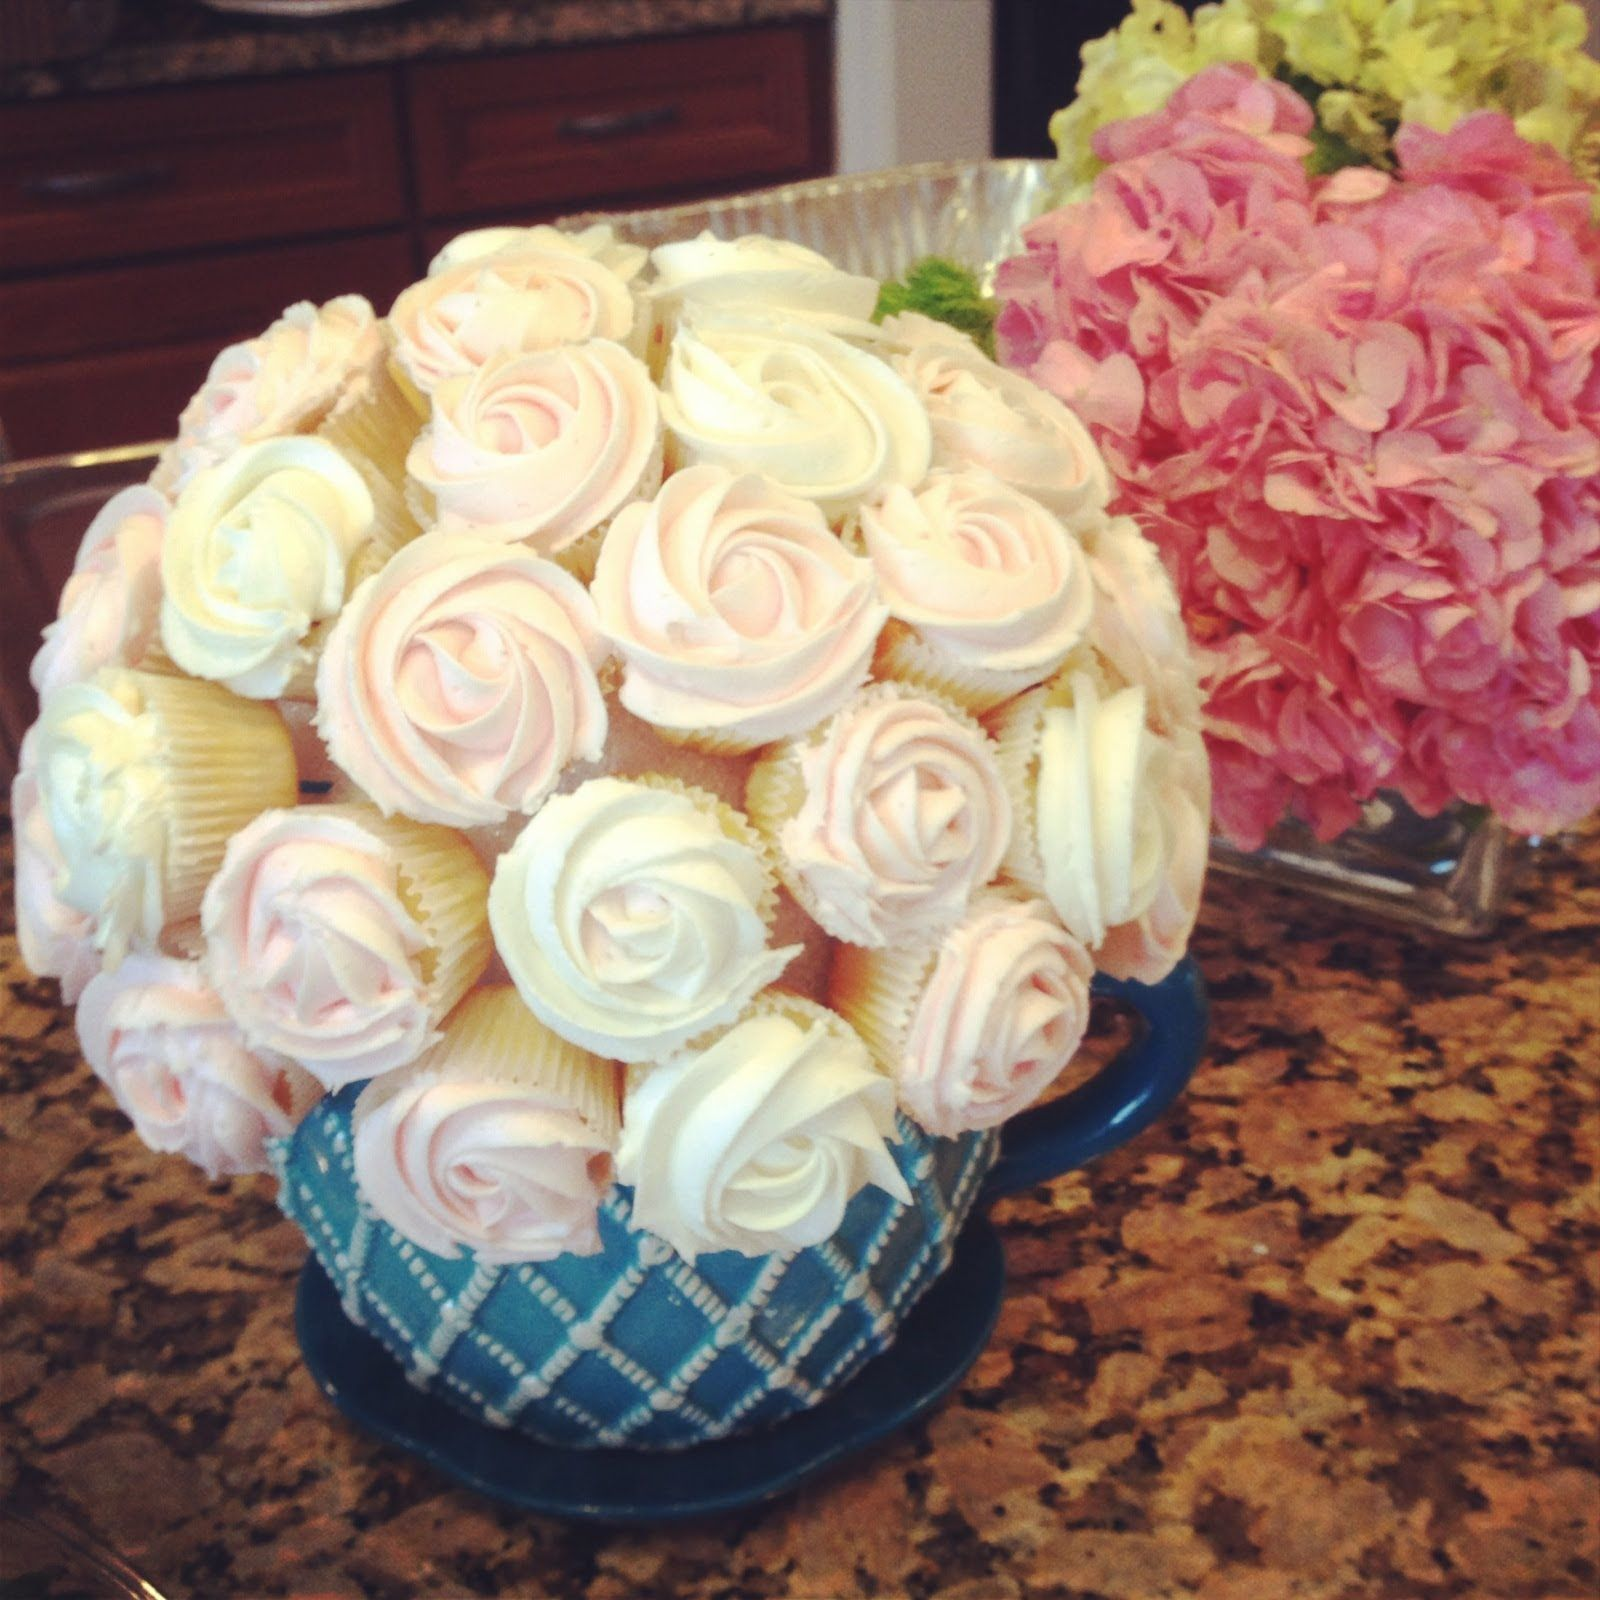 How to make a cupcake flower boquet cake an desserts pinterest in this video anh creates cupcake flower bouquets for a special party she creates 3 bouquets hydrangea roses and chrysanthemums izmirmasajfo Choice Image